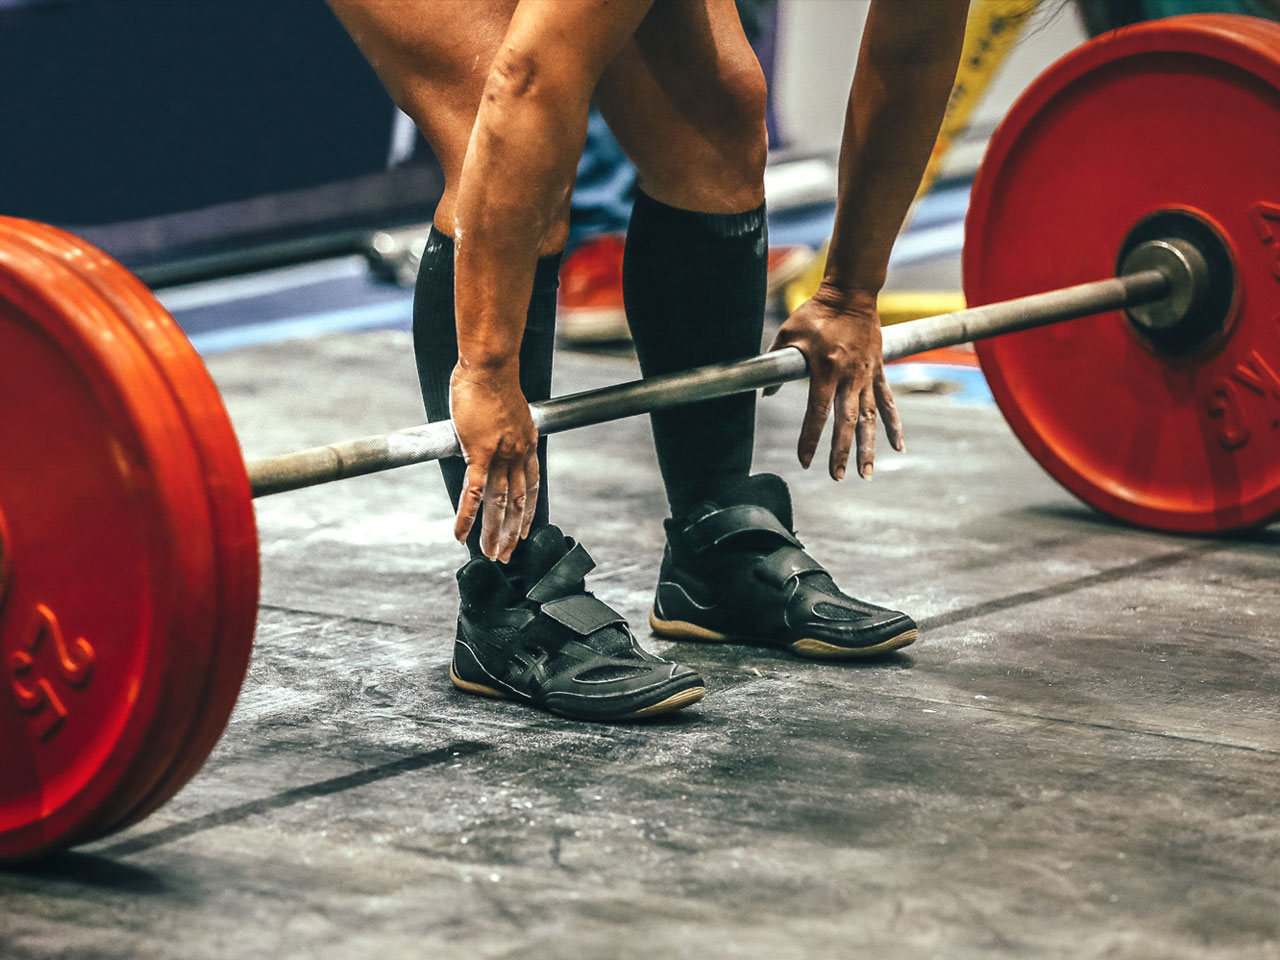 5 Simple Ways To Improve Your Grip Strength